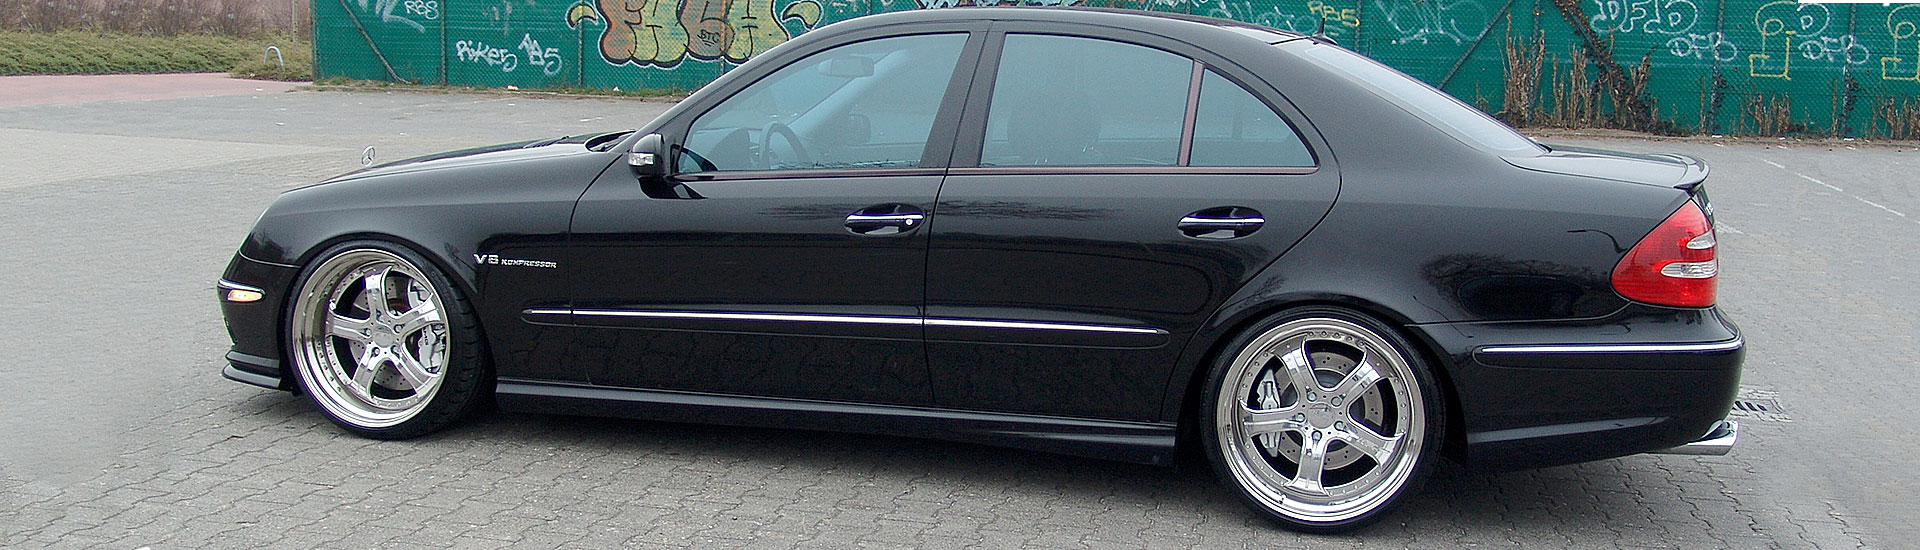 Mec Design Tuning And Modification For Your Mercedes W211